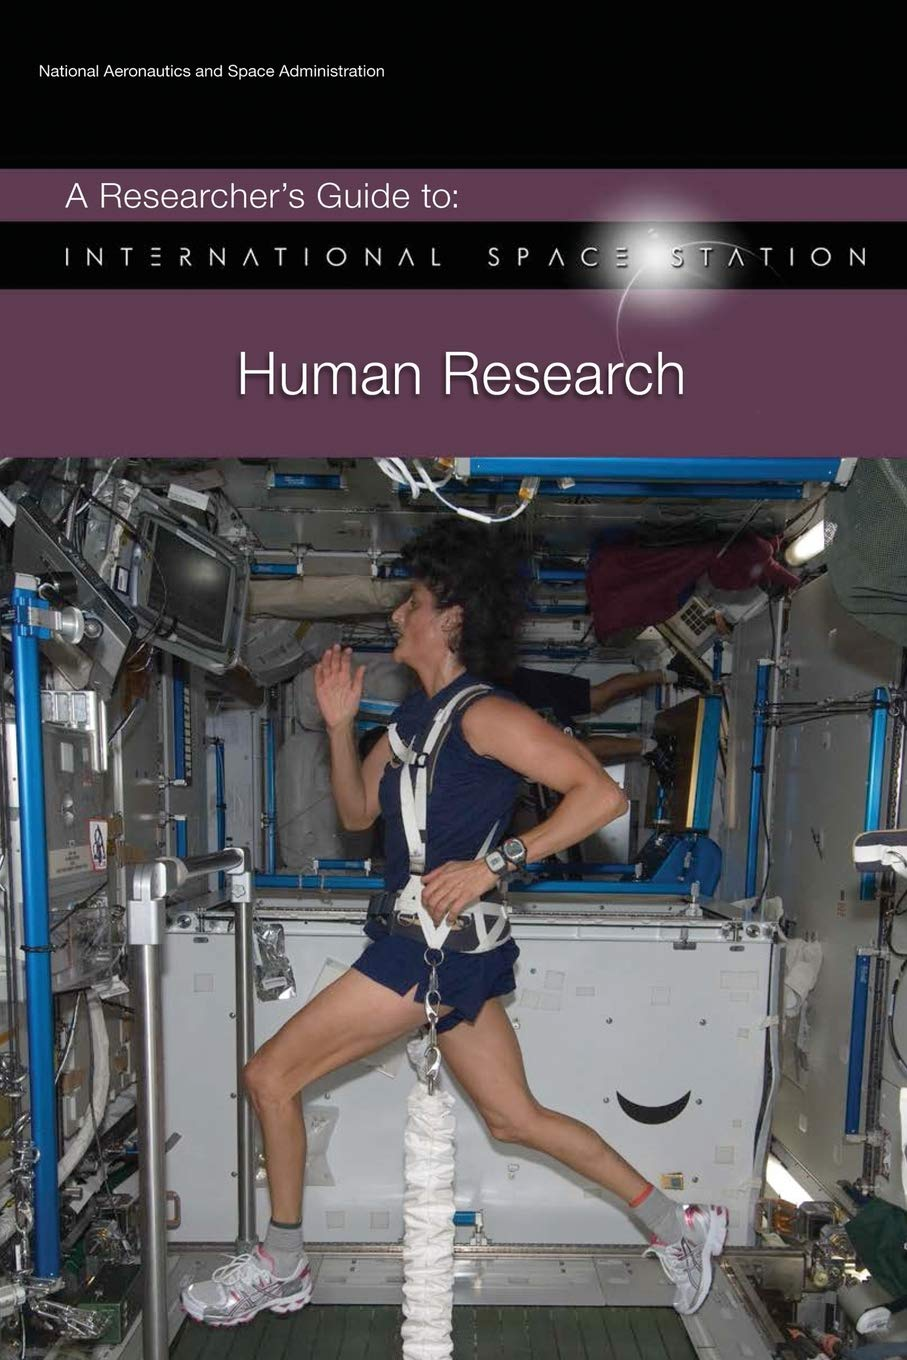 A Researcher's Guide to: International Space Station - Human Research